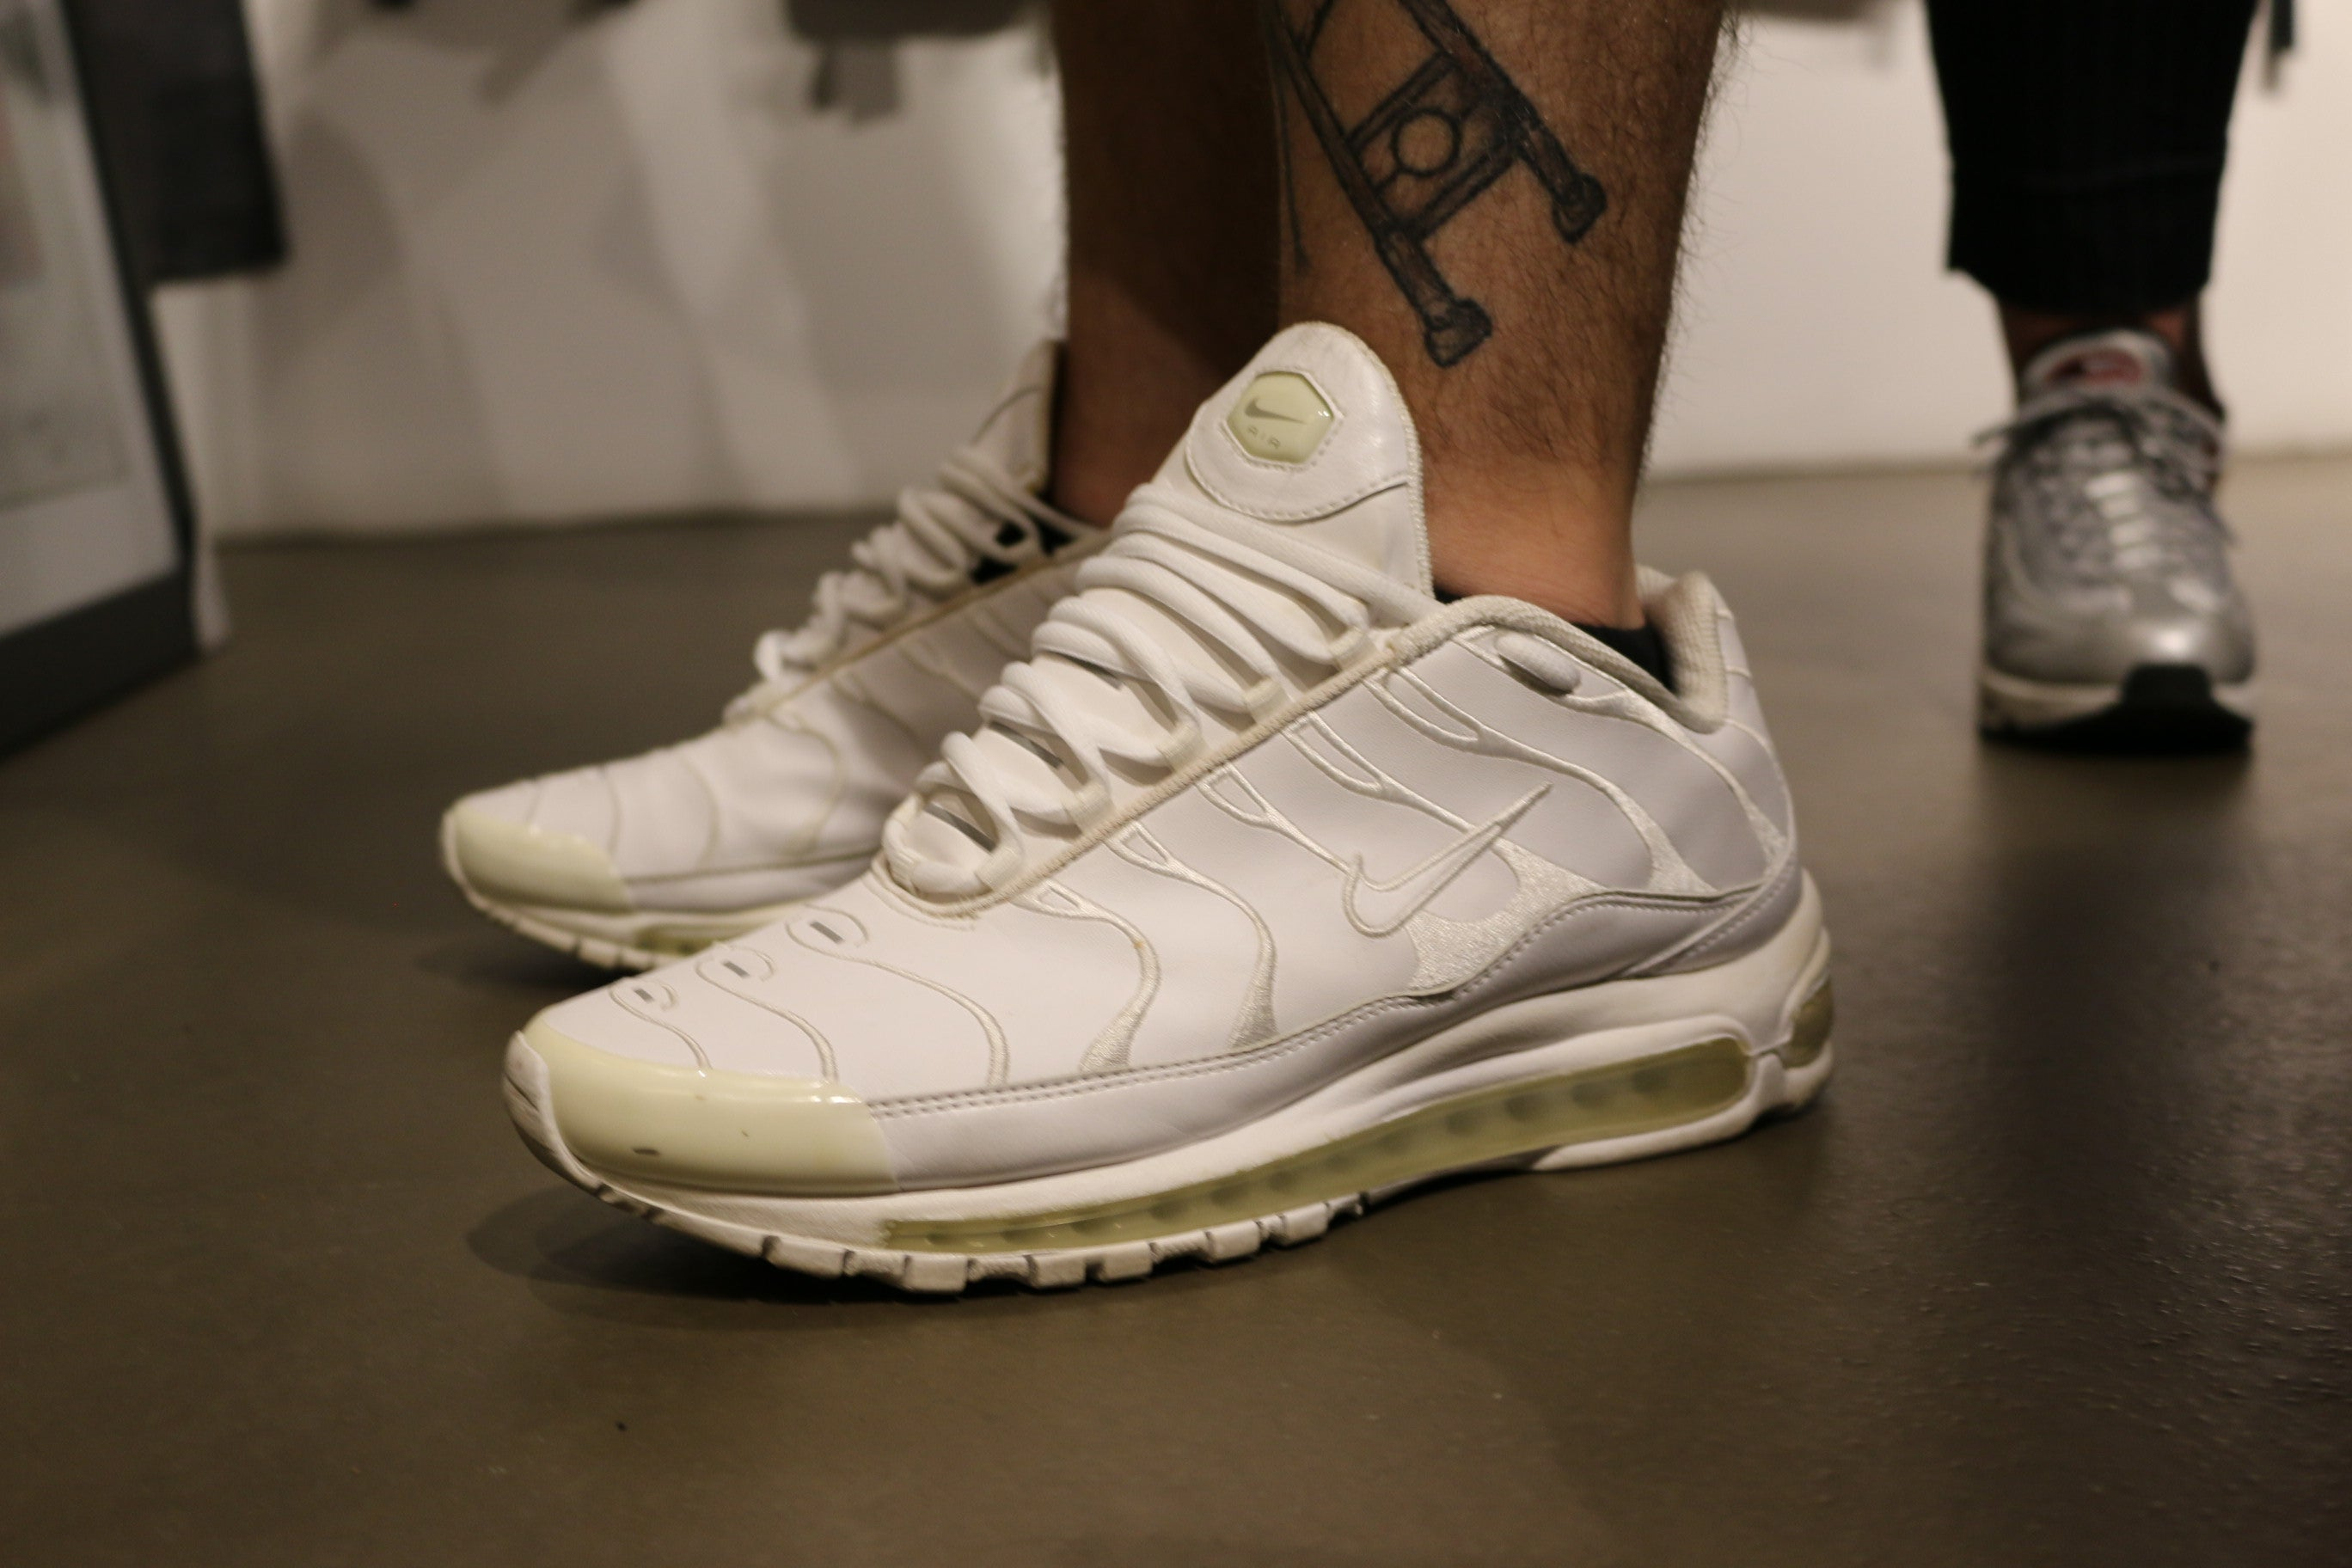 buy online 51553 481da AIR MAX DAY AT BUTTER: CHECK OUT THE BEST KICKS WORN – Butter